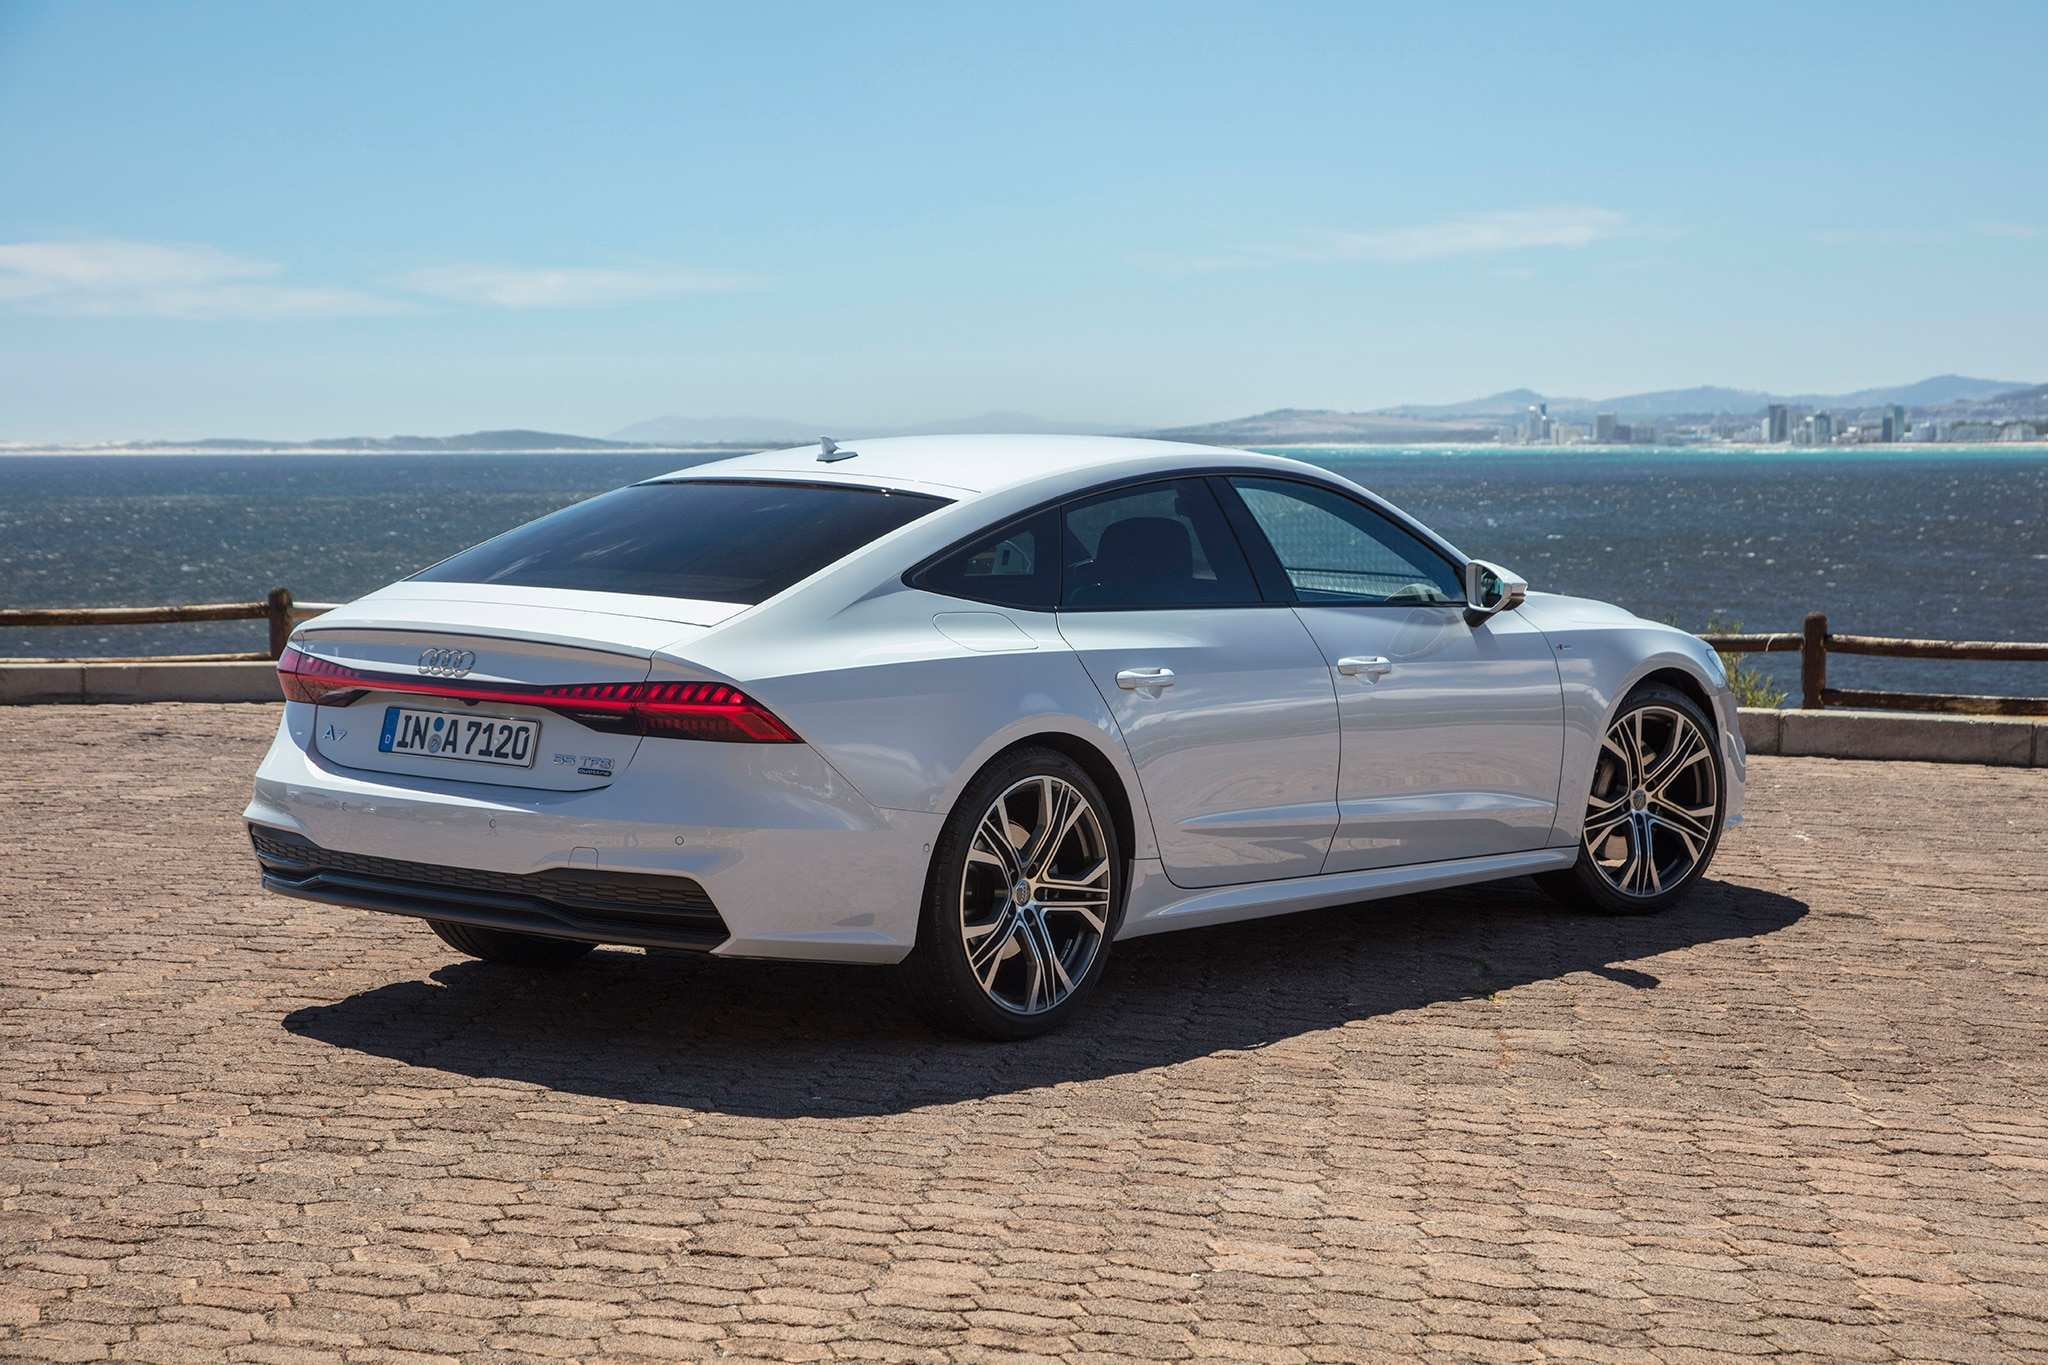 63 New 2019 Audi A7 0 60 Spy Shoot with 2019 Audi A7 0 60